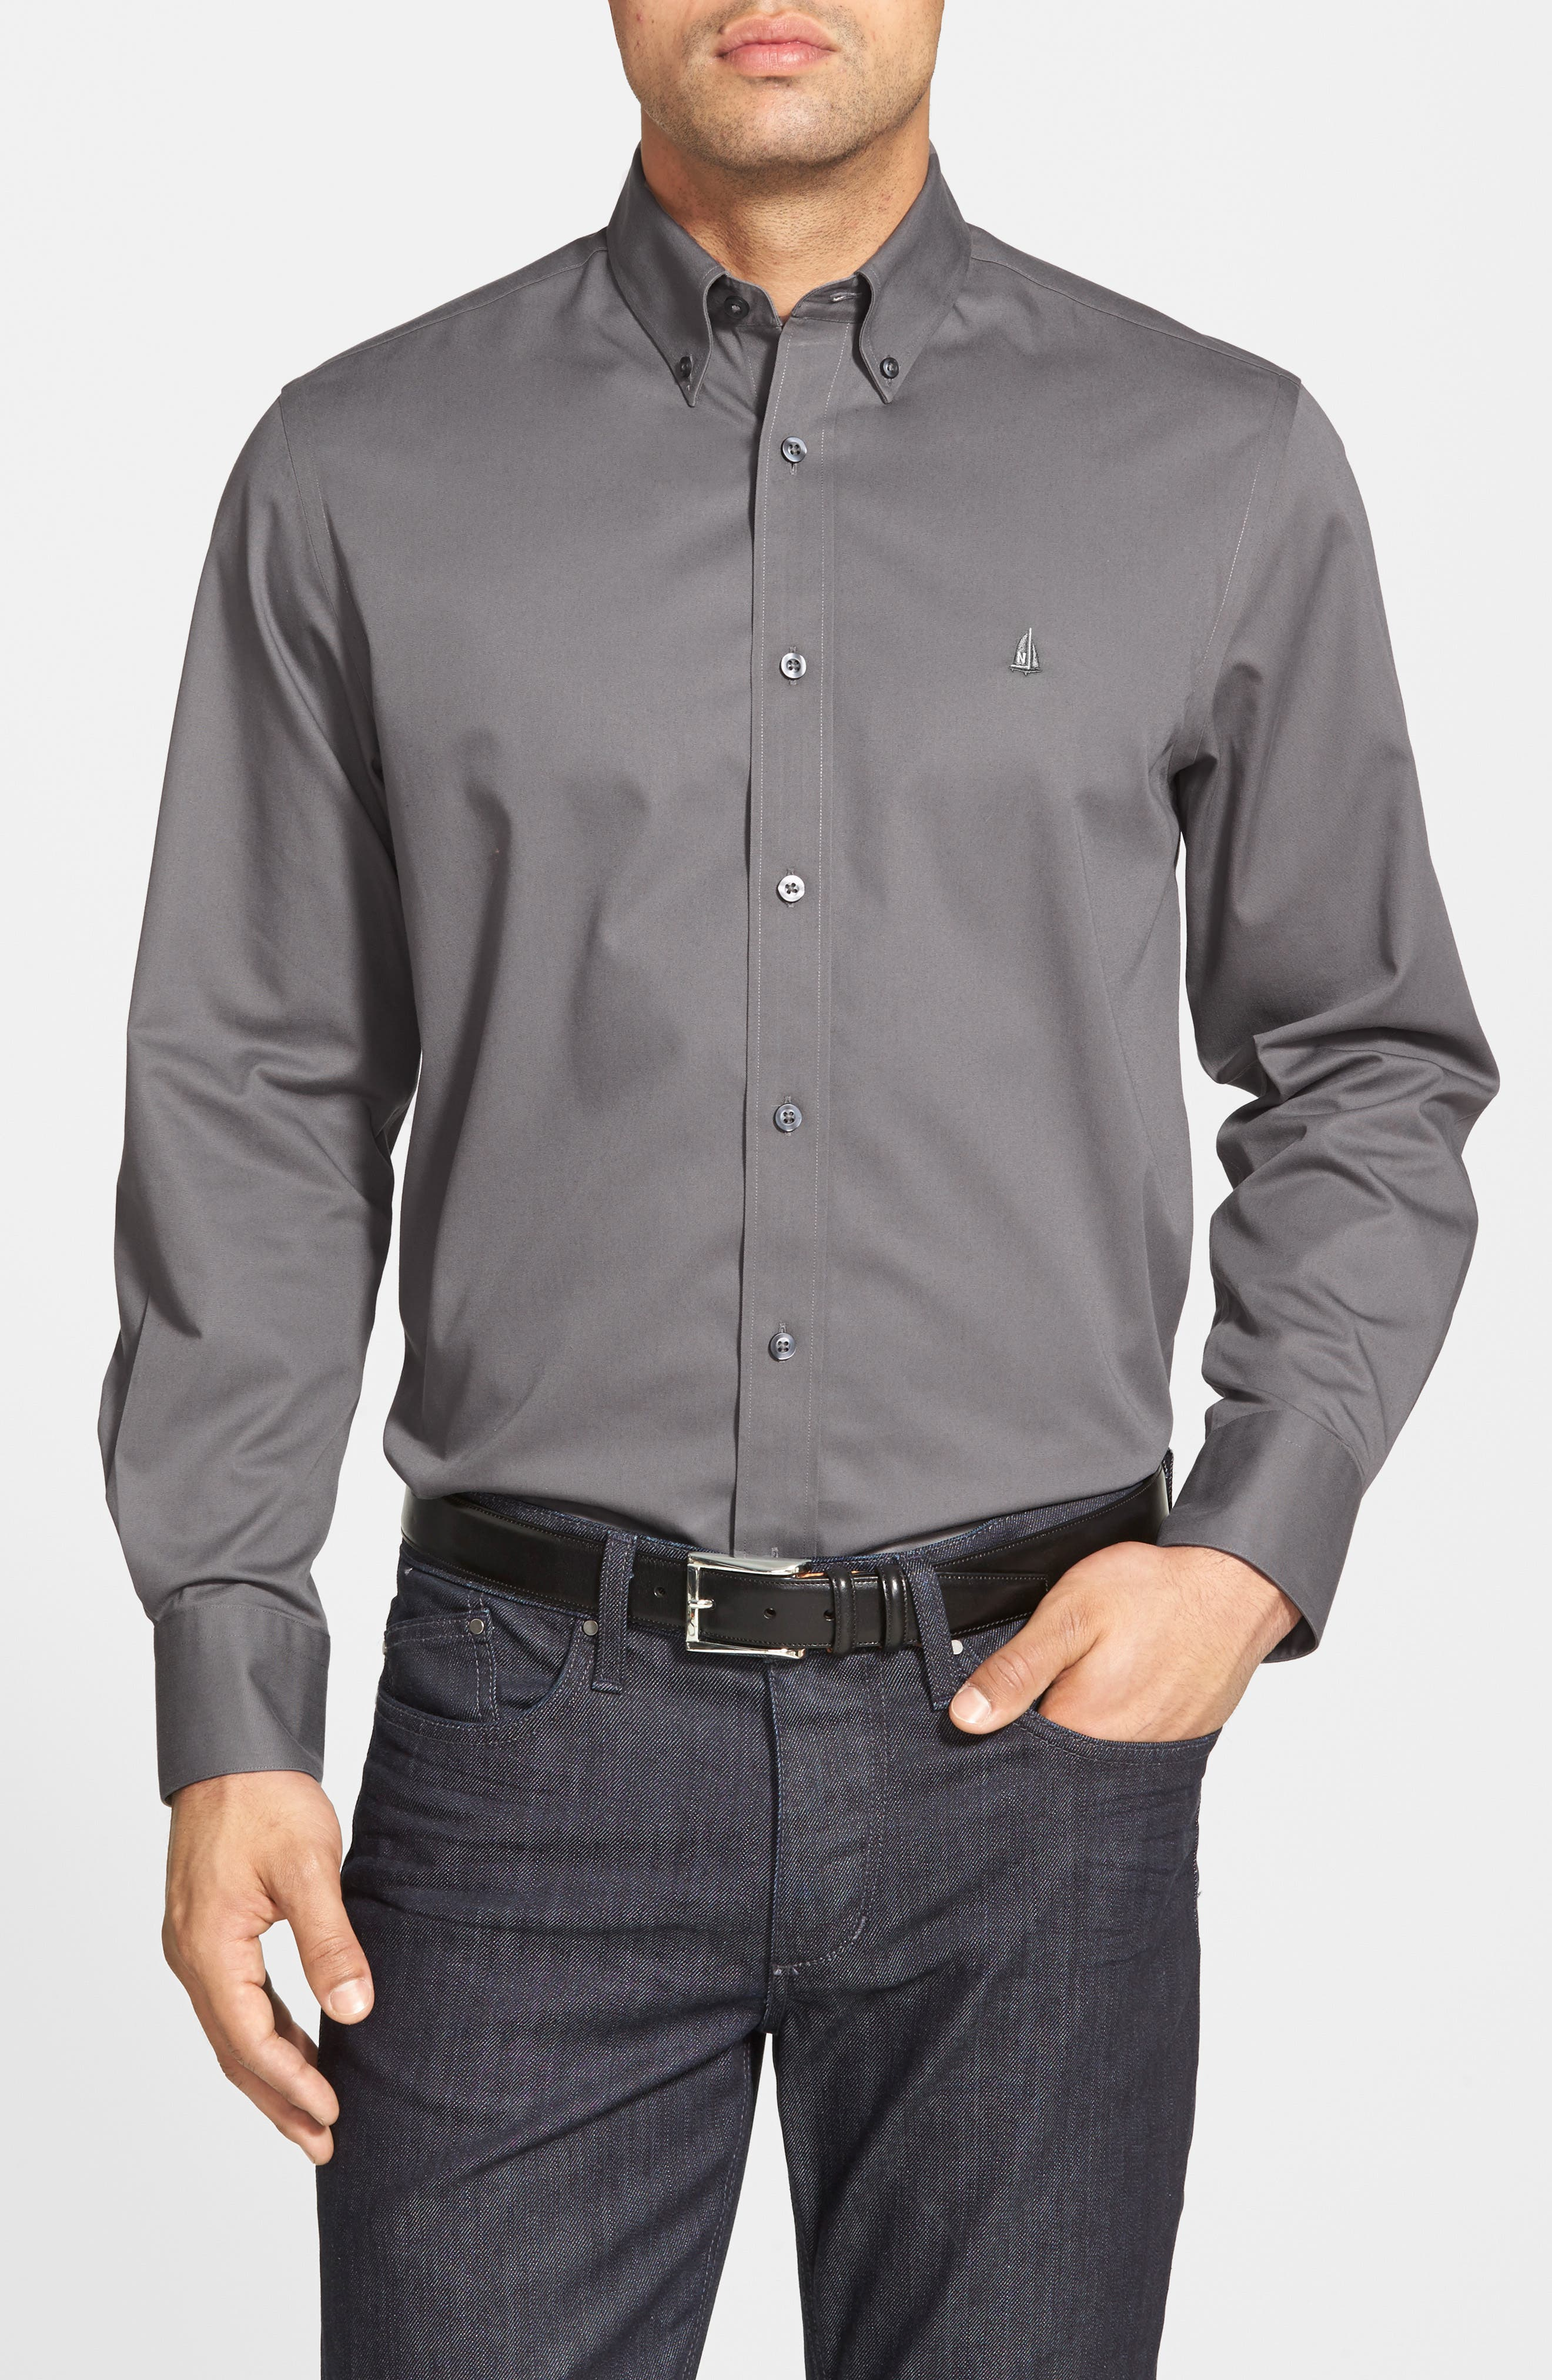 Nordstrom Shop Smartcare(TM) Traditional Fit Twill Boat Shirt, Grey